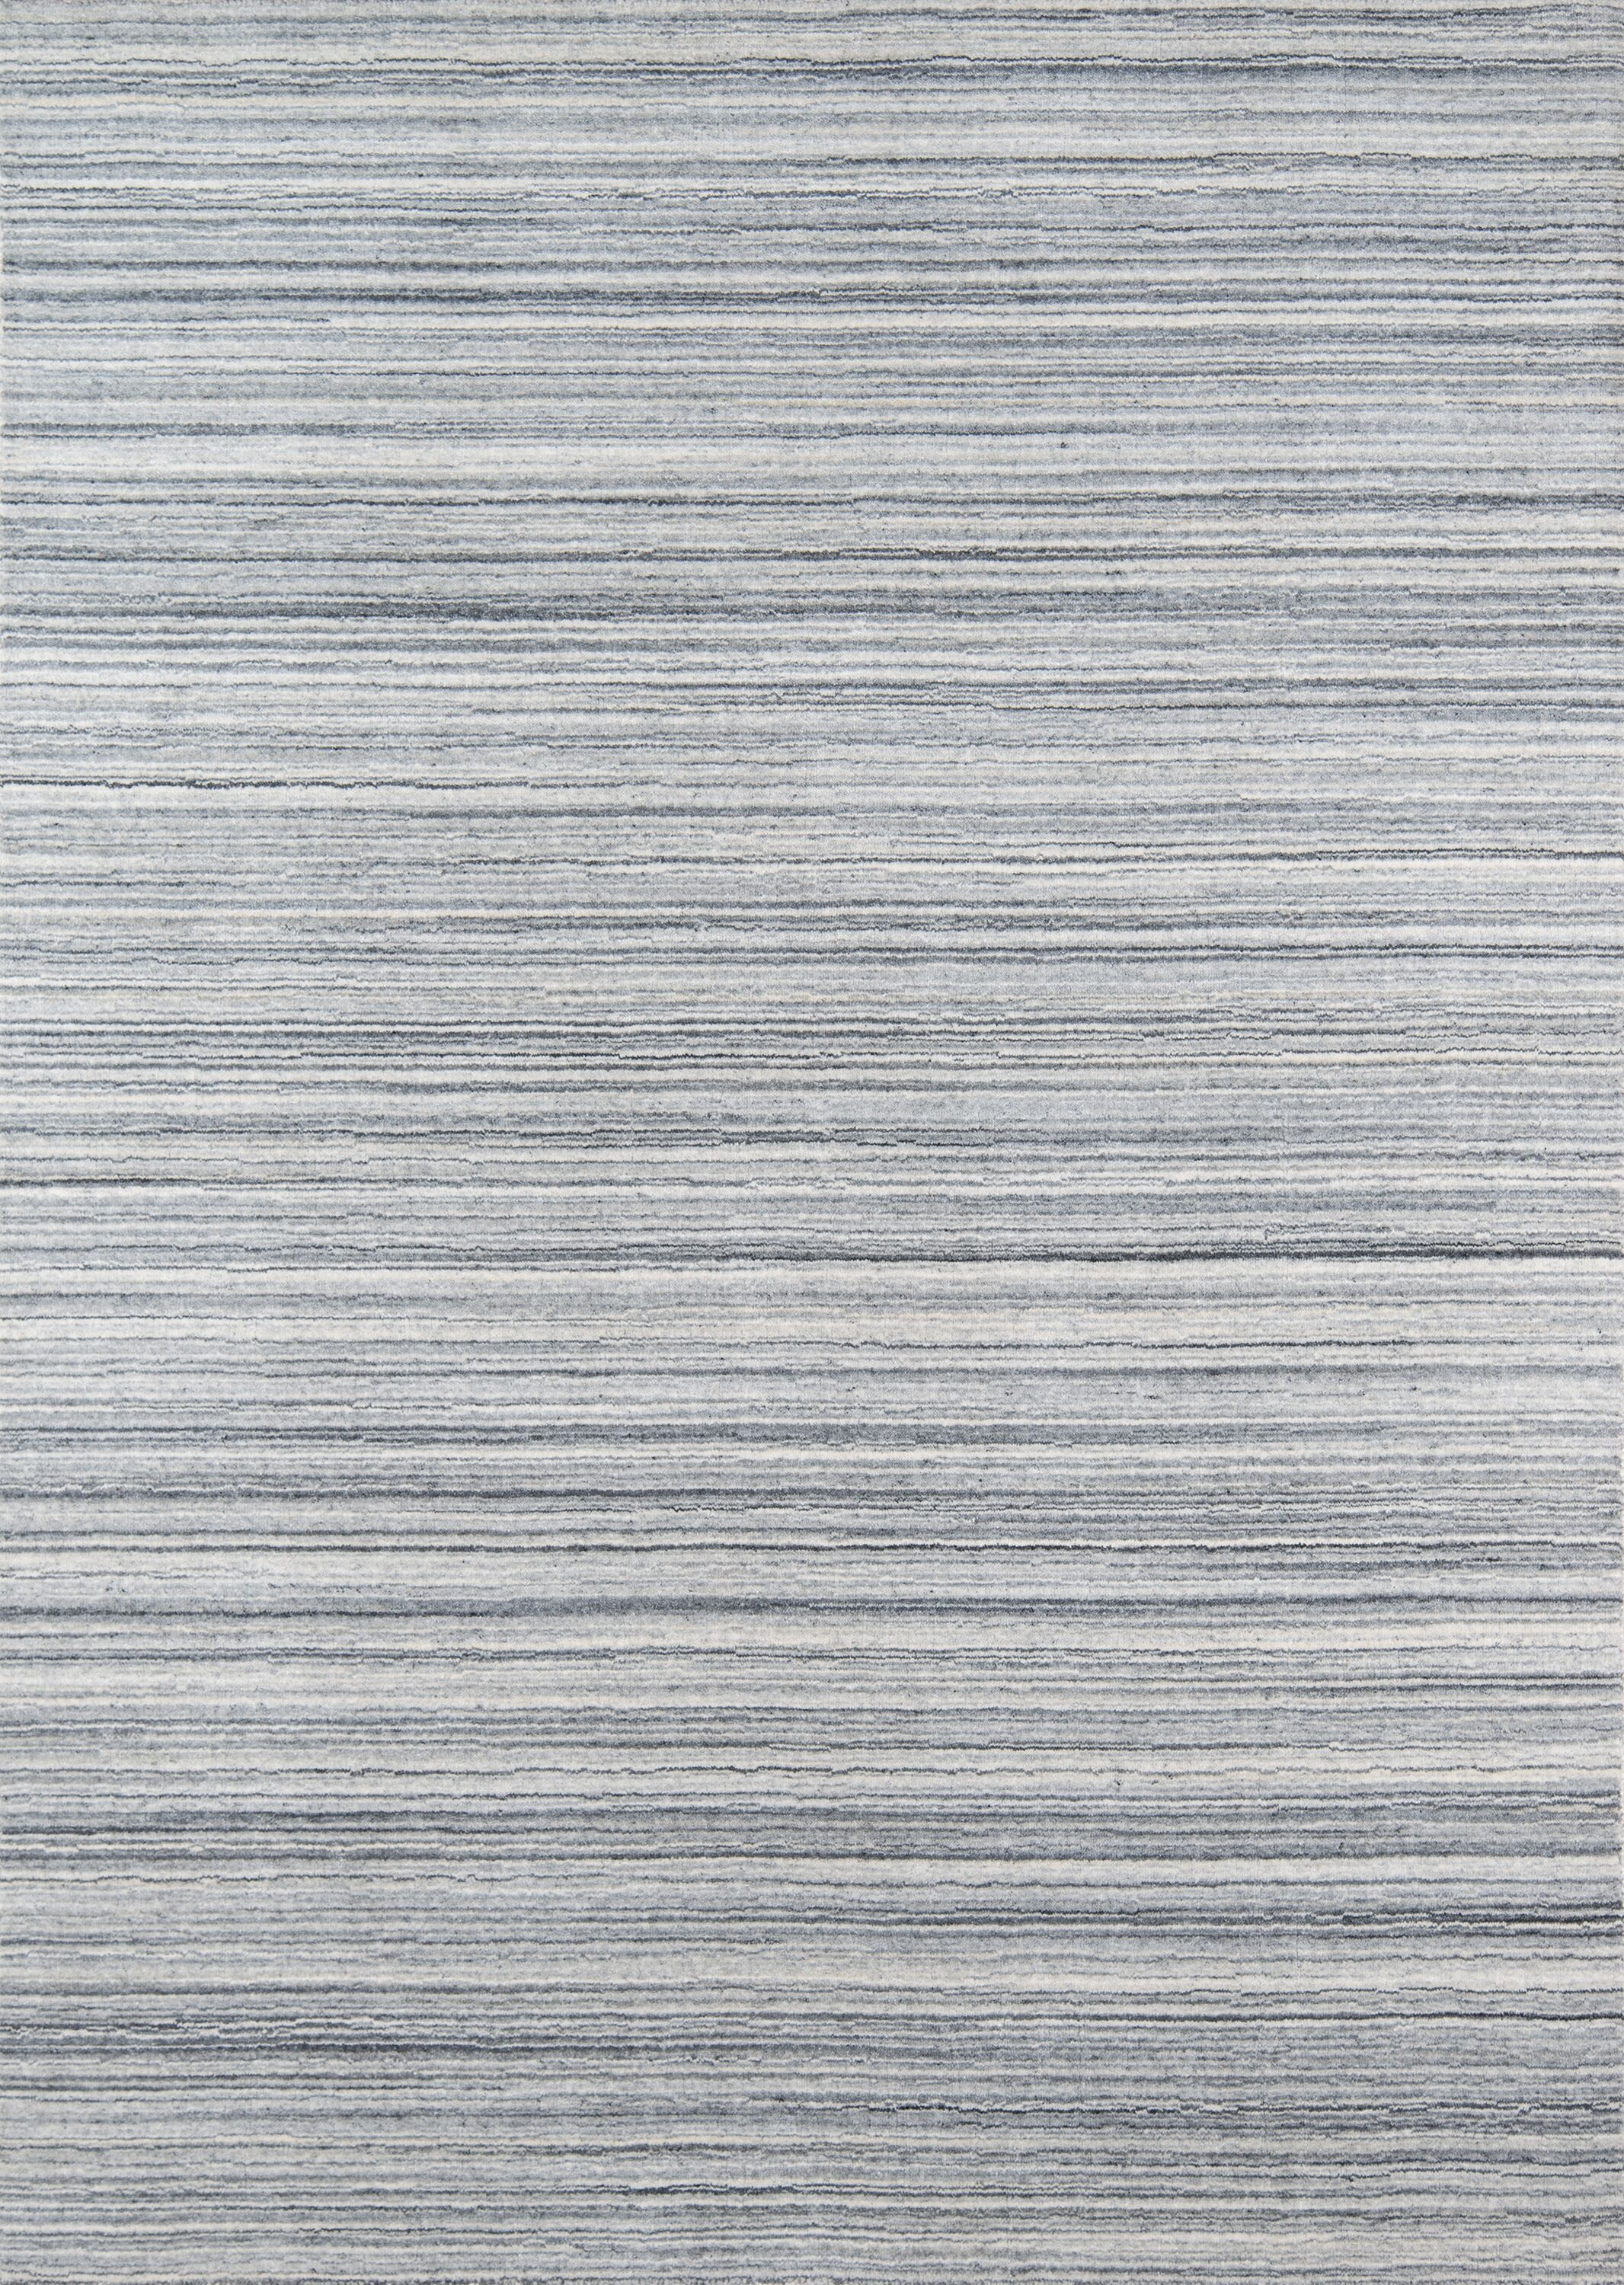 Haggins Hand-Woven Wool Gray Area Rug Rug Size: Rectangle 3'6